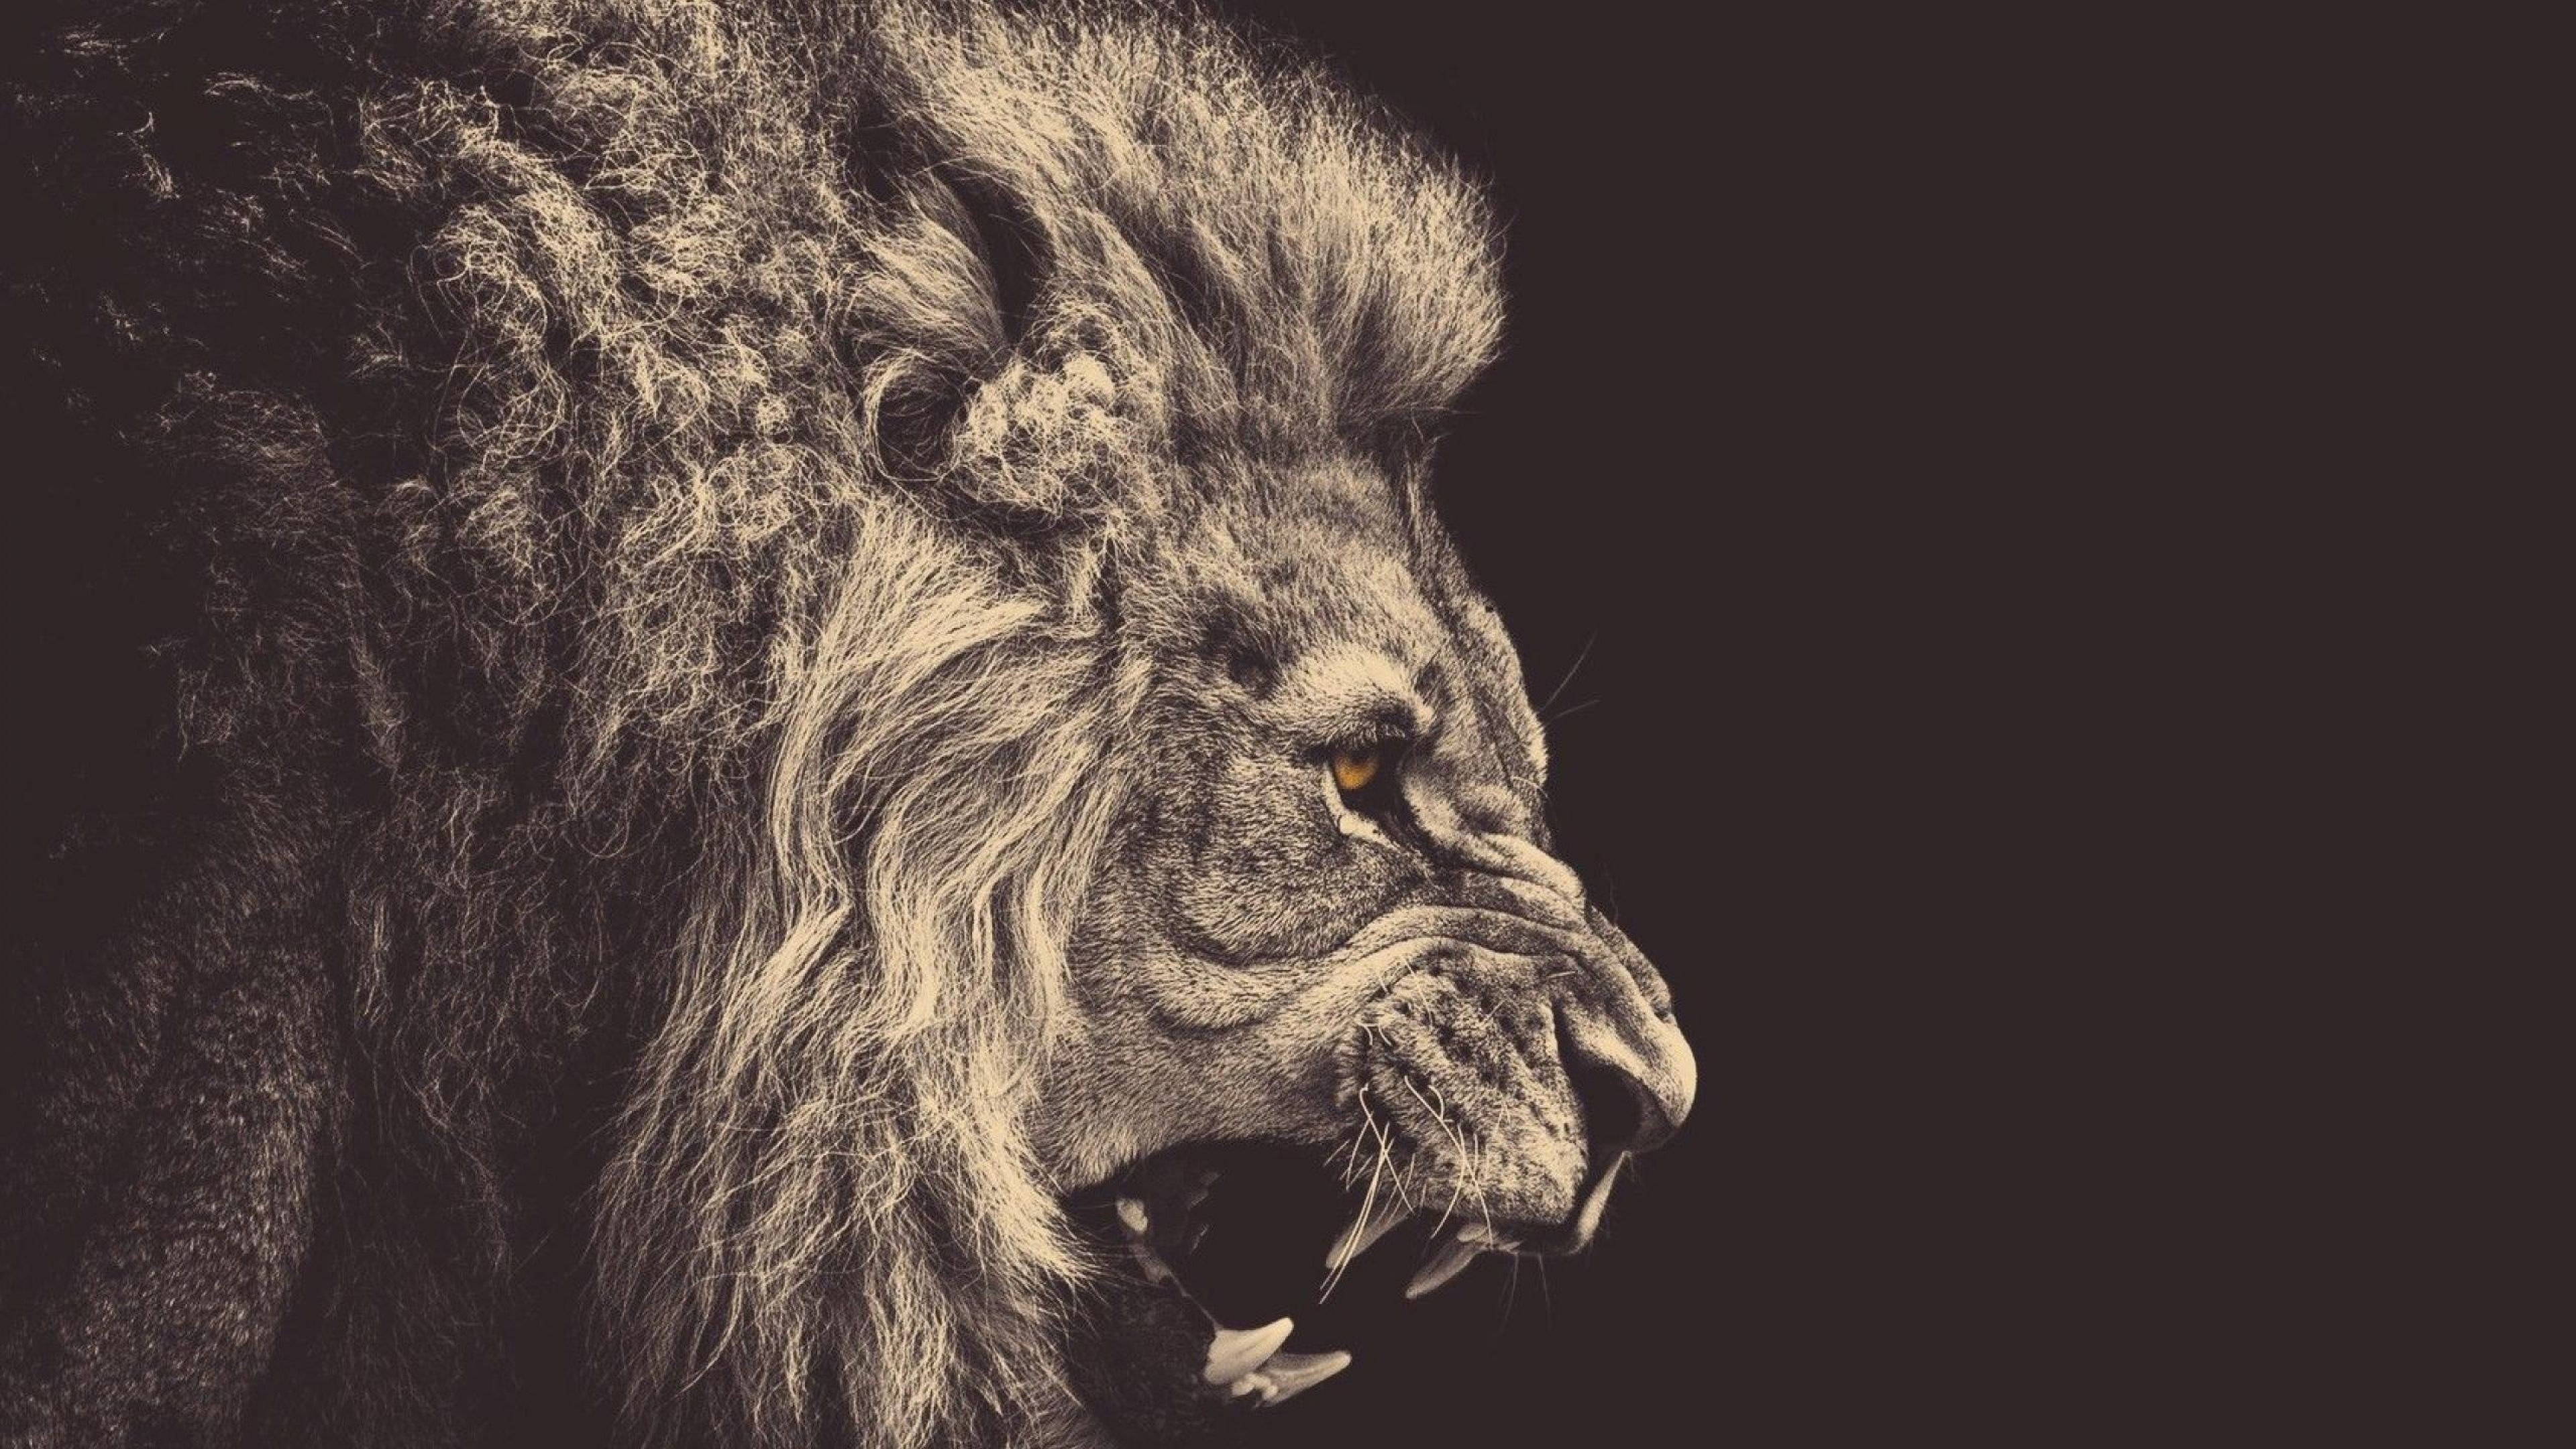 Res: 3840x2160, 4K Ultra HD Lion Wallpapers HD, Desktop Backgrounds